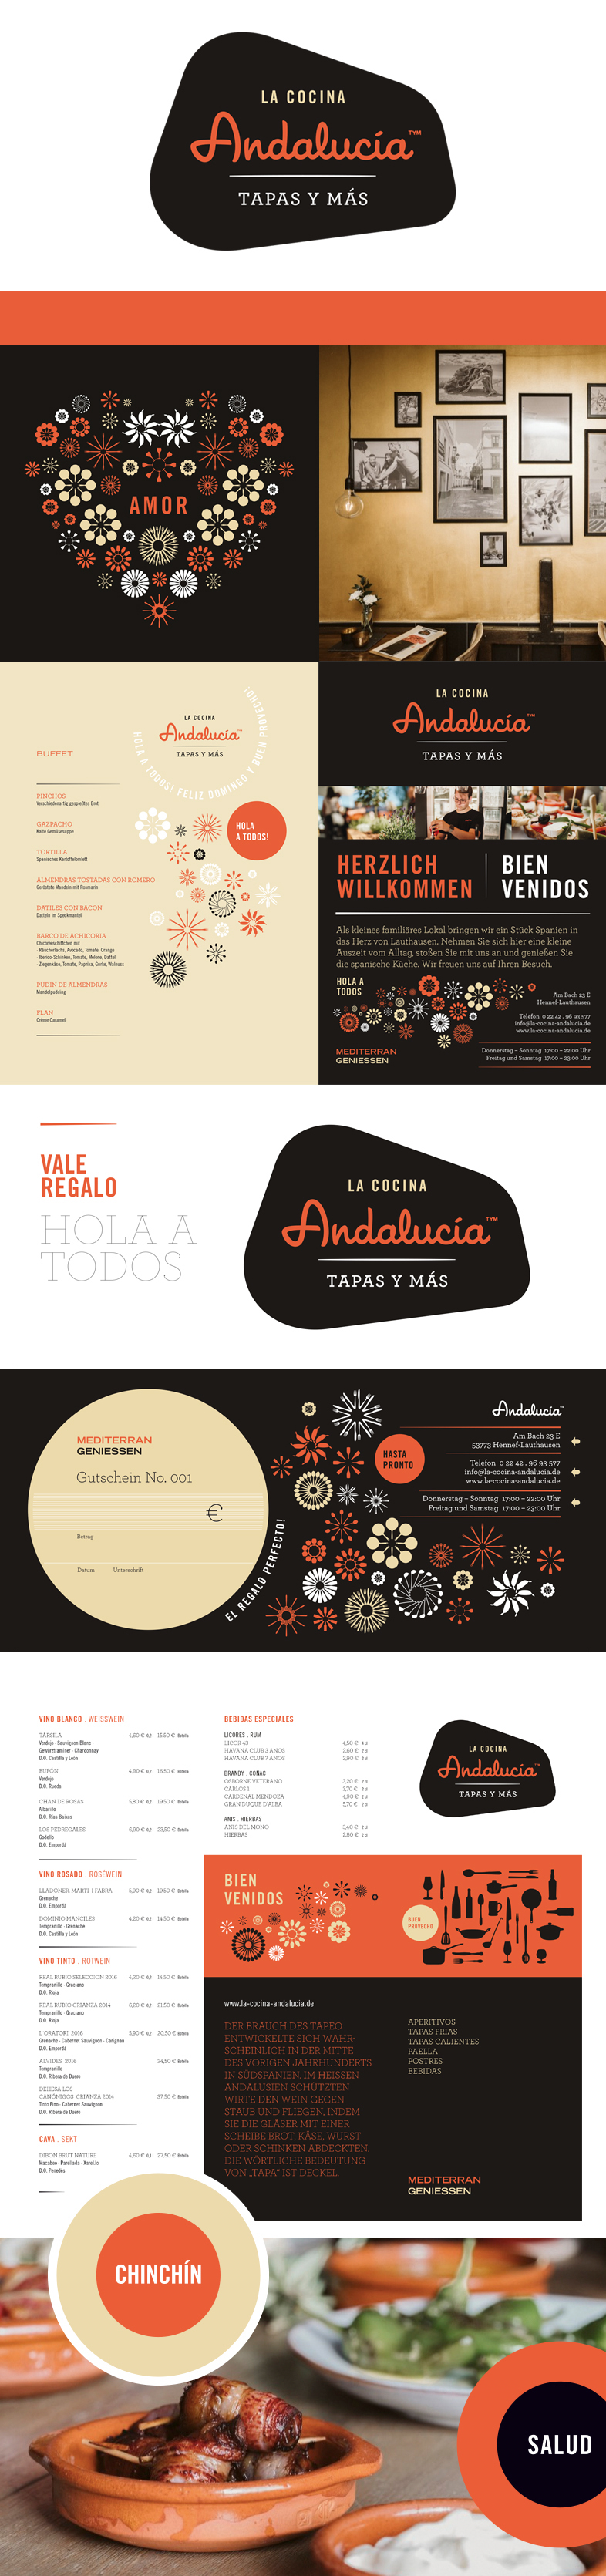 Restaurant Branding / Corporate Design / Typedesign